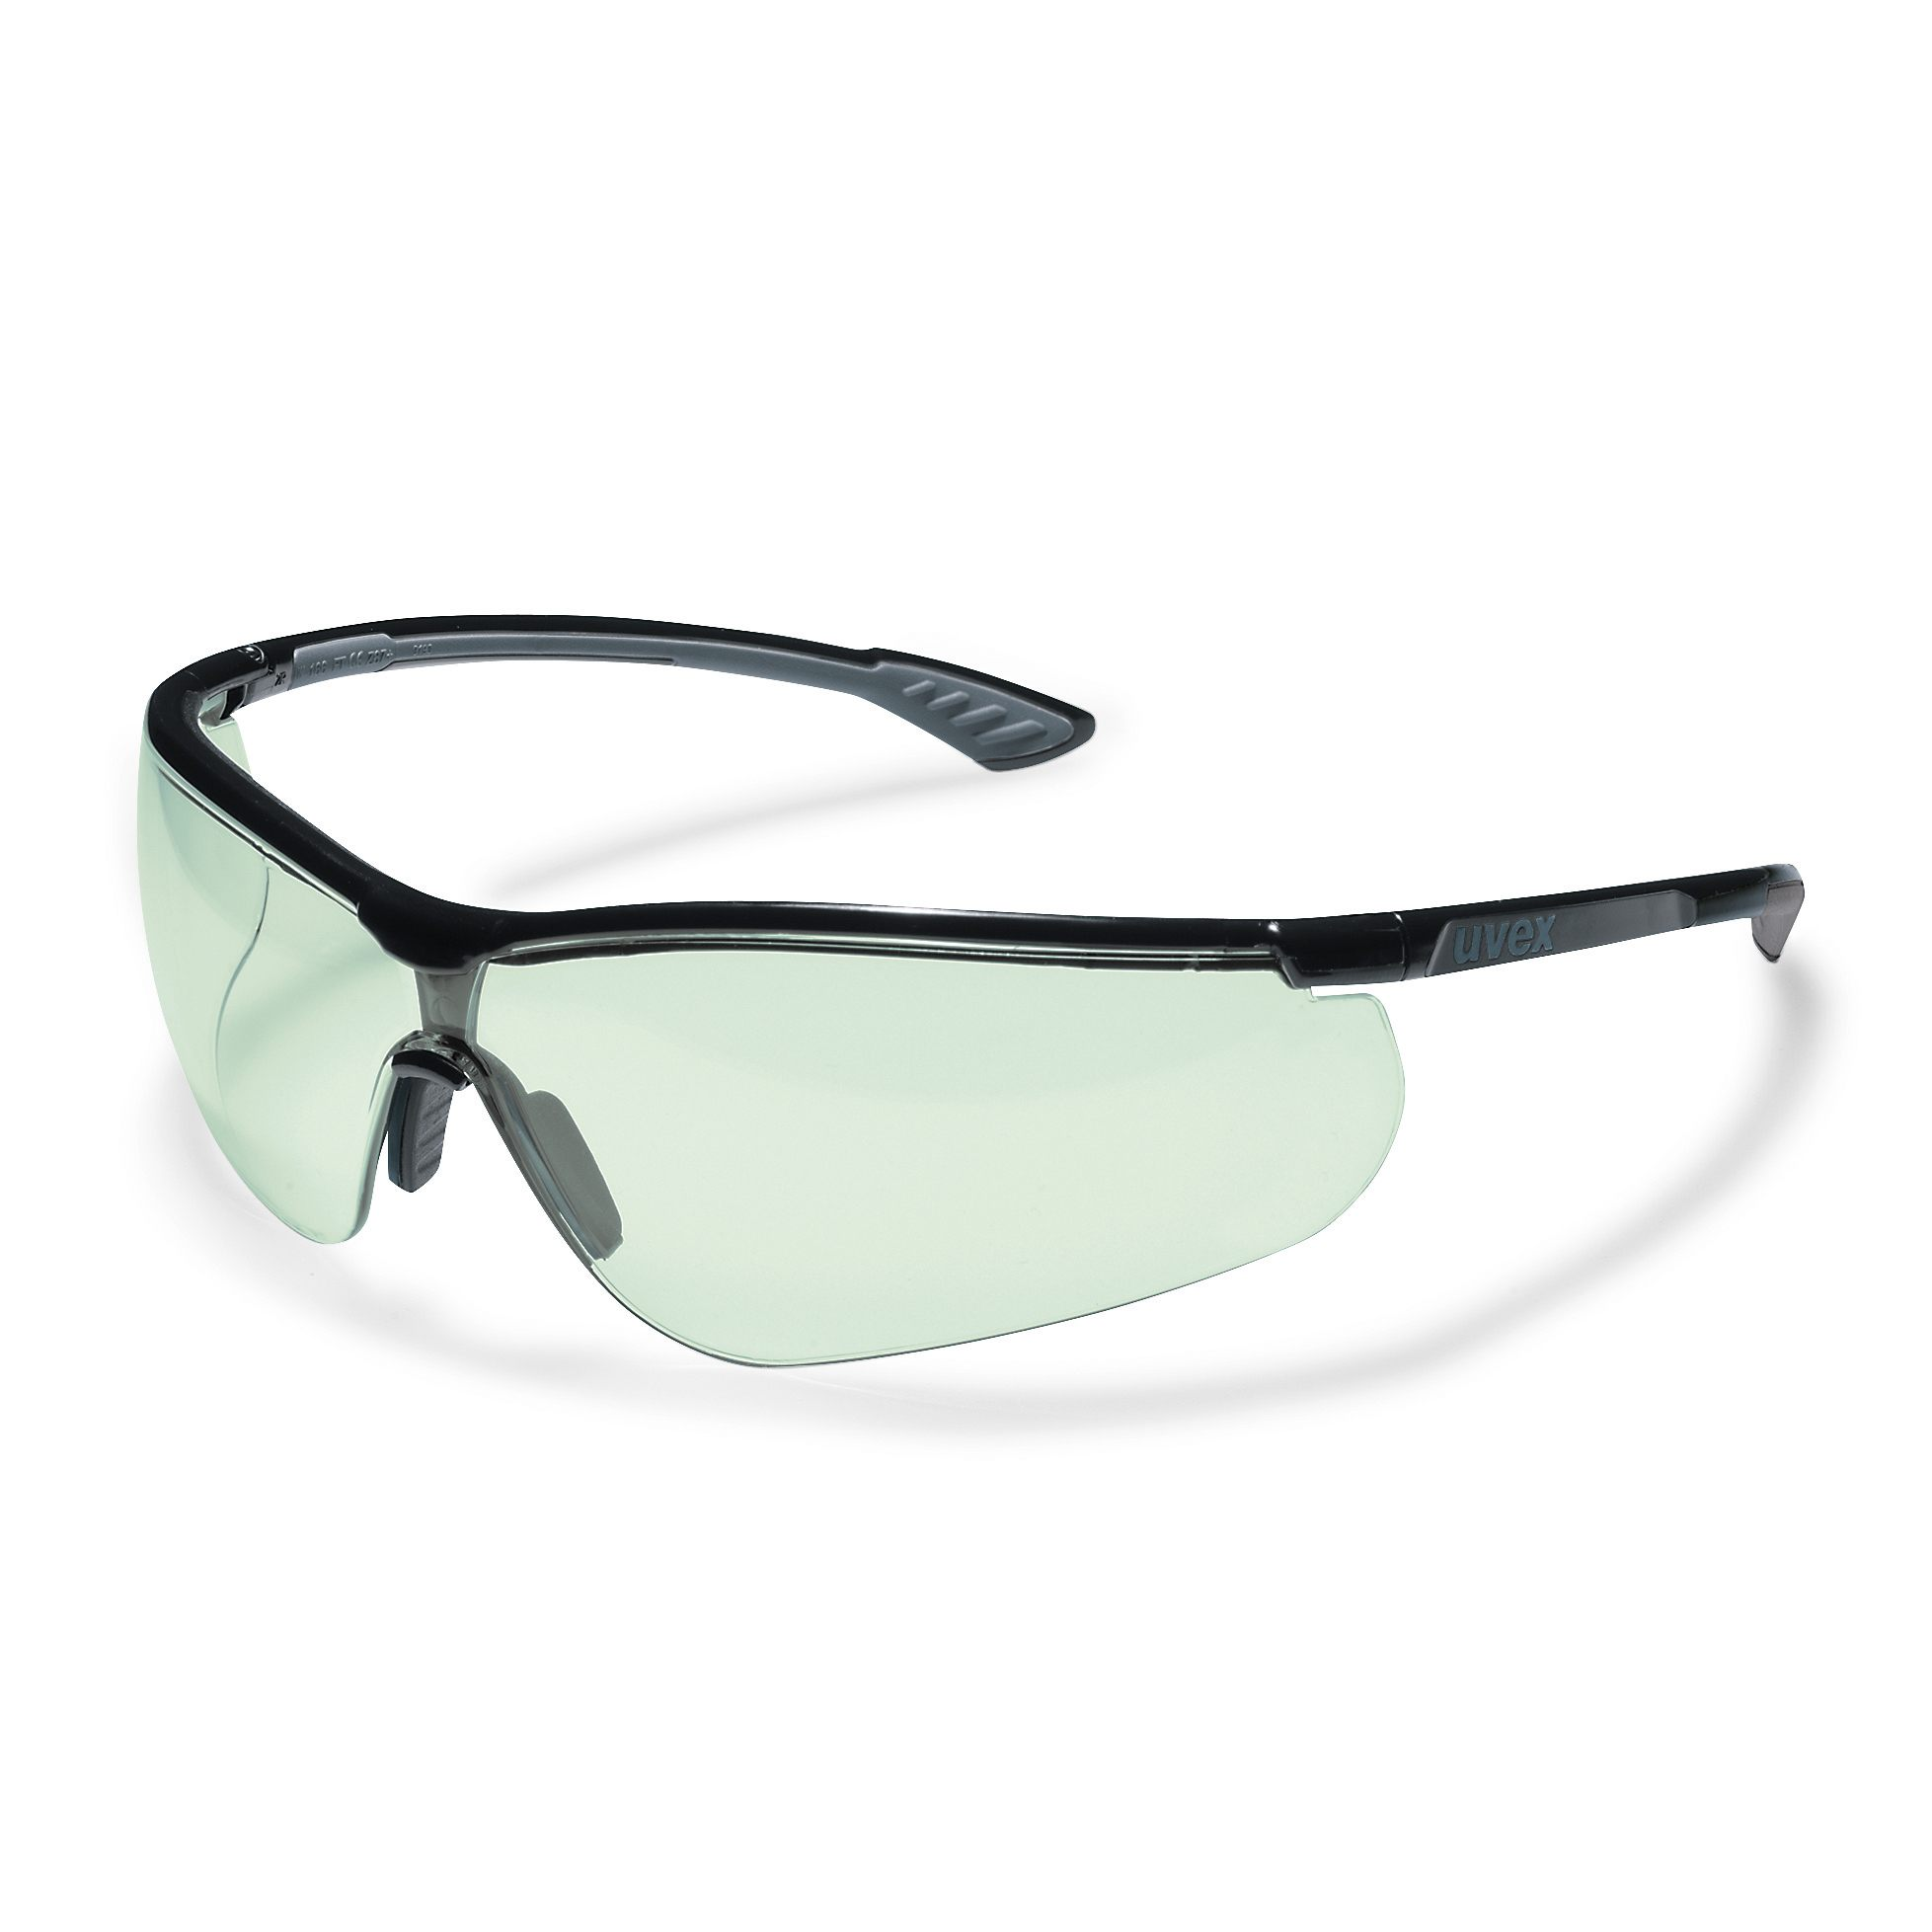 Uvex Sportstyle 113 Cycling 3 Lense Sports Sunglasses